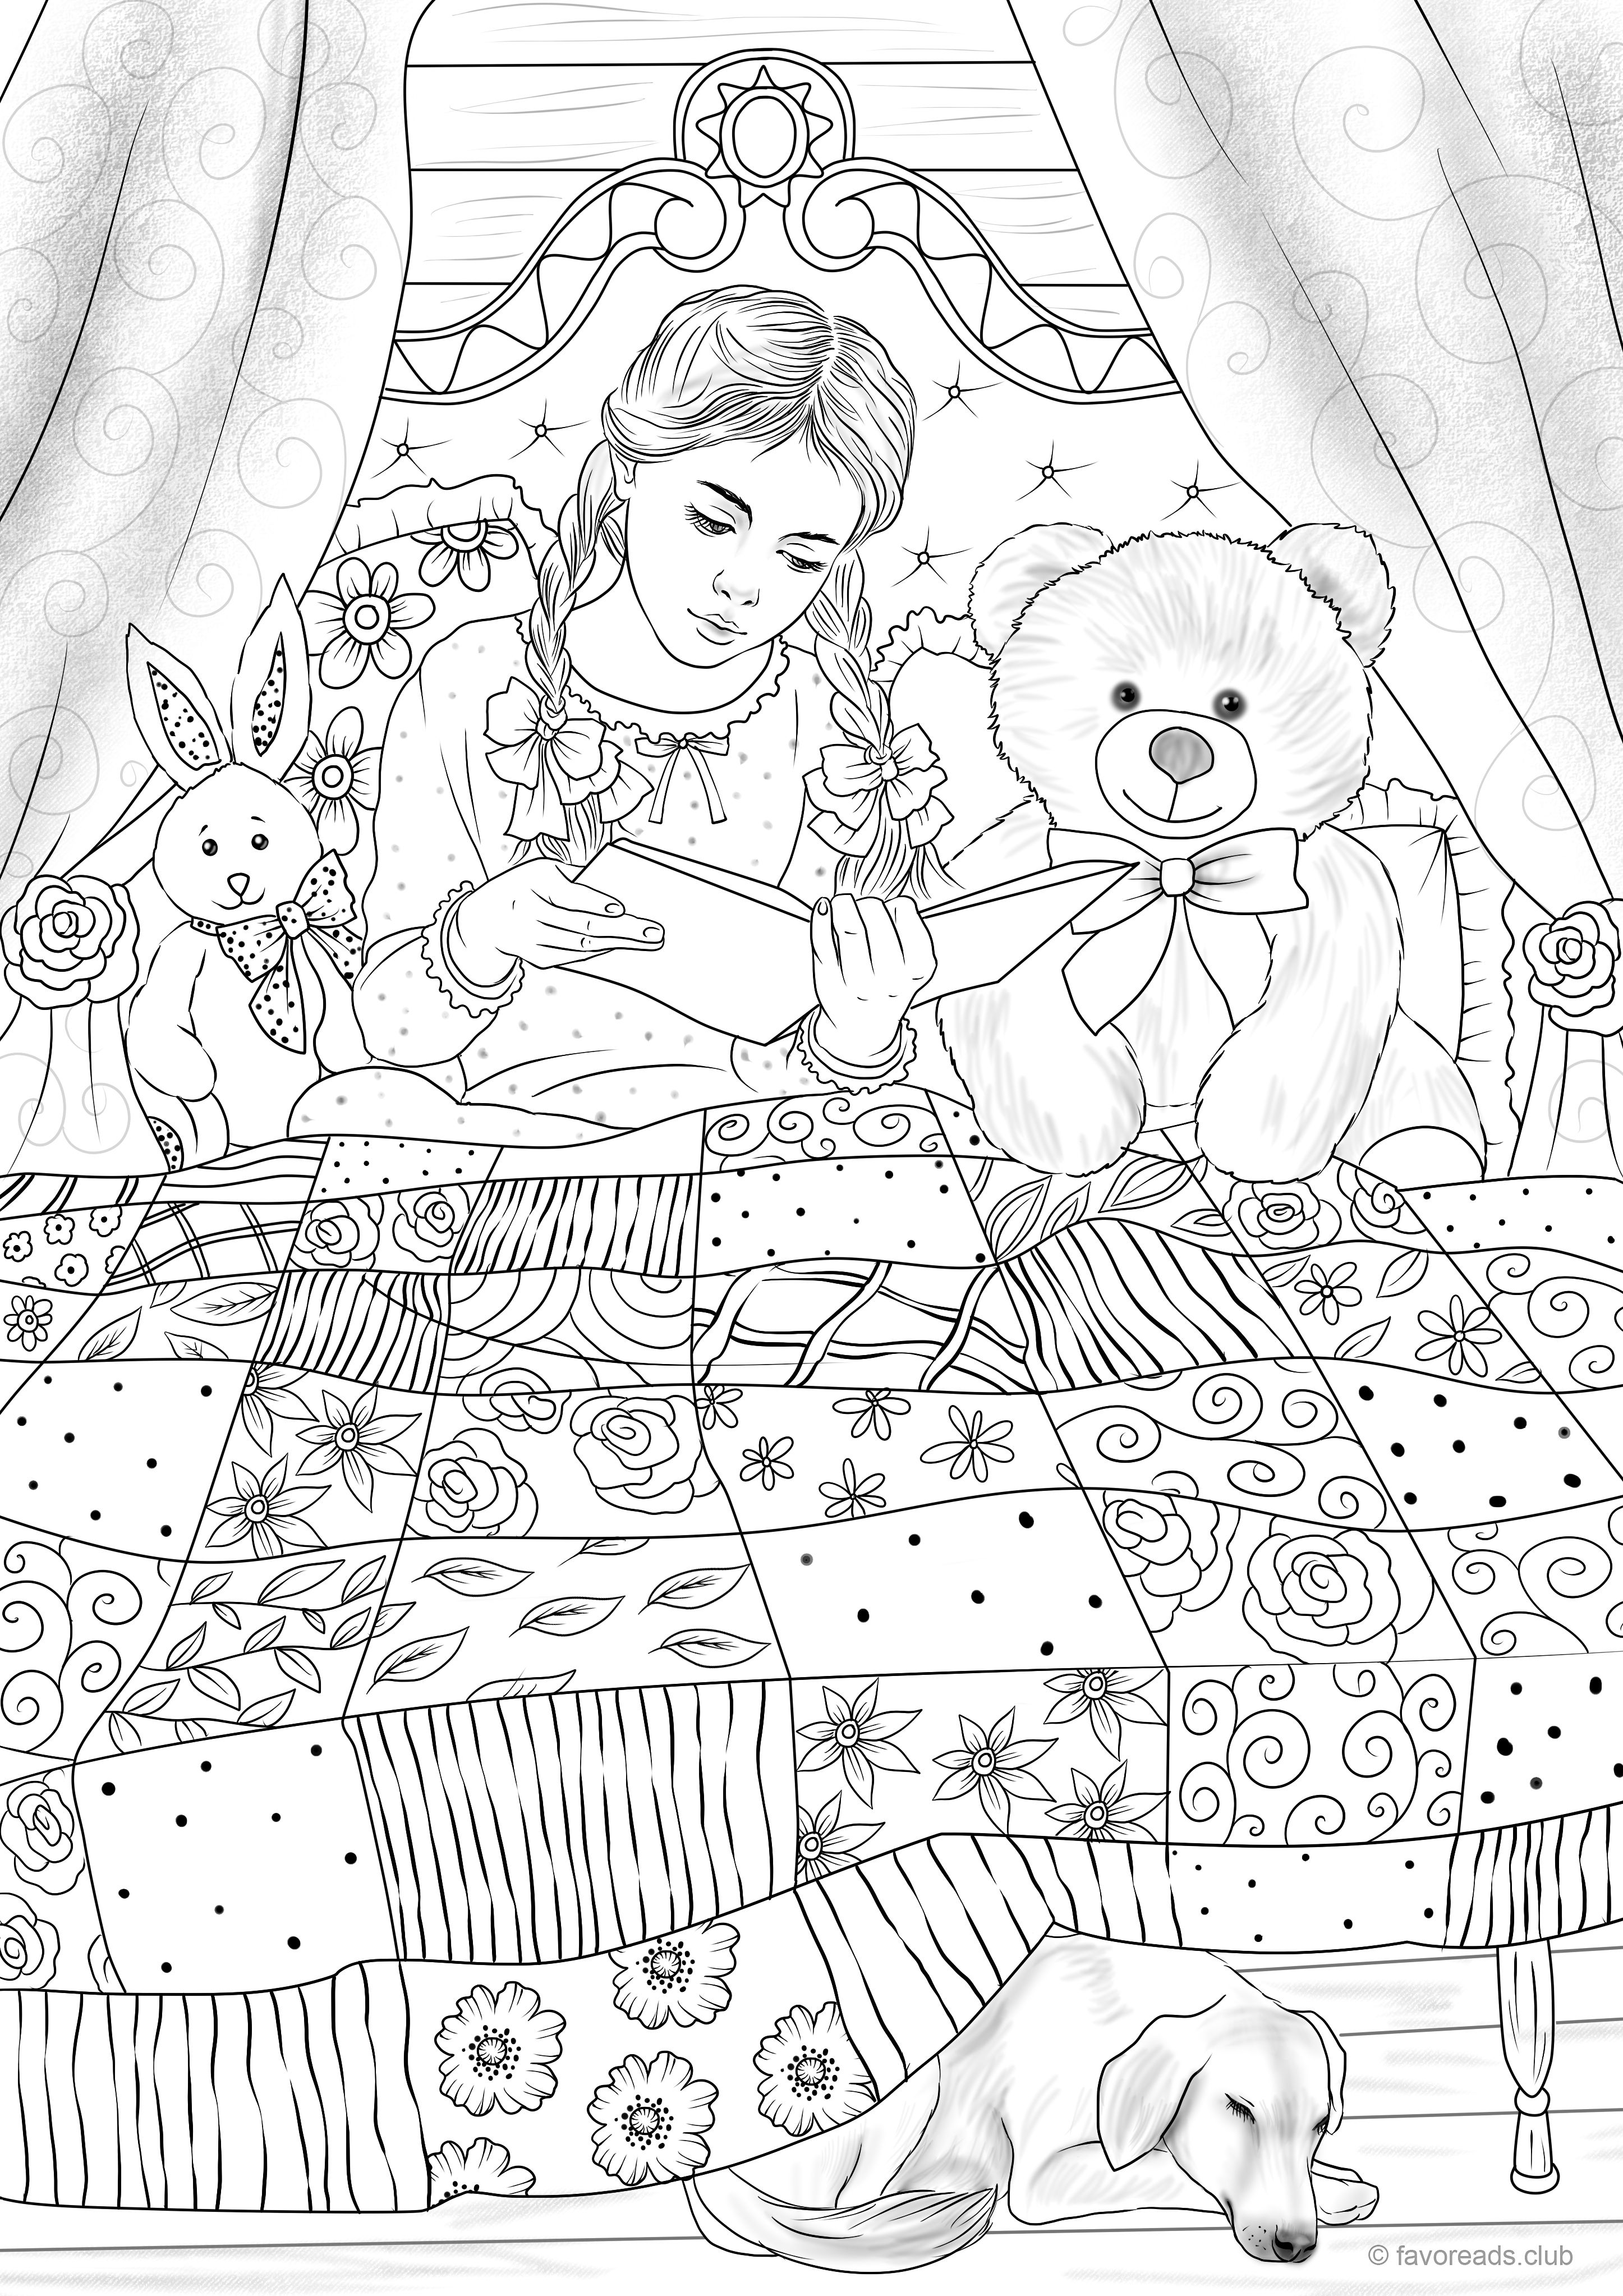 Pin By Tsvetelina On Coloring Pages Grayscale Coloring Cool Coloring Pages Barbie Coloring Pages [ 4092 x 2893 Pixel ]